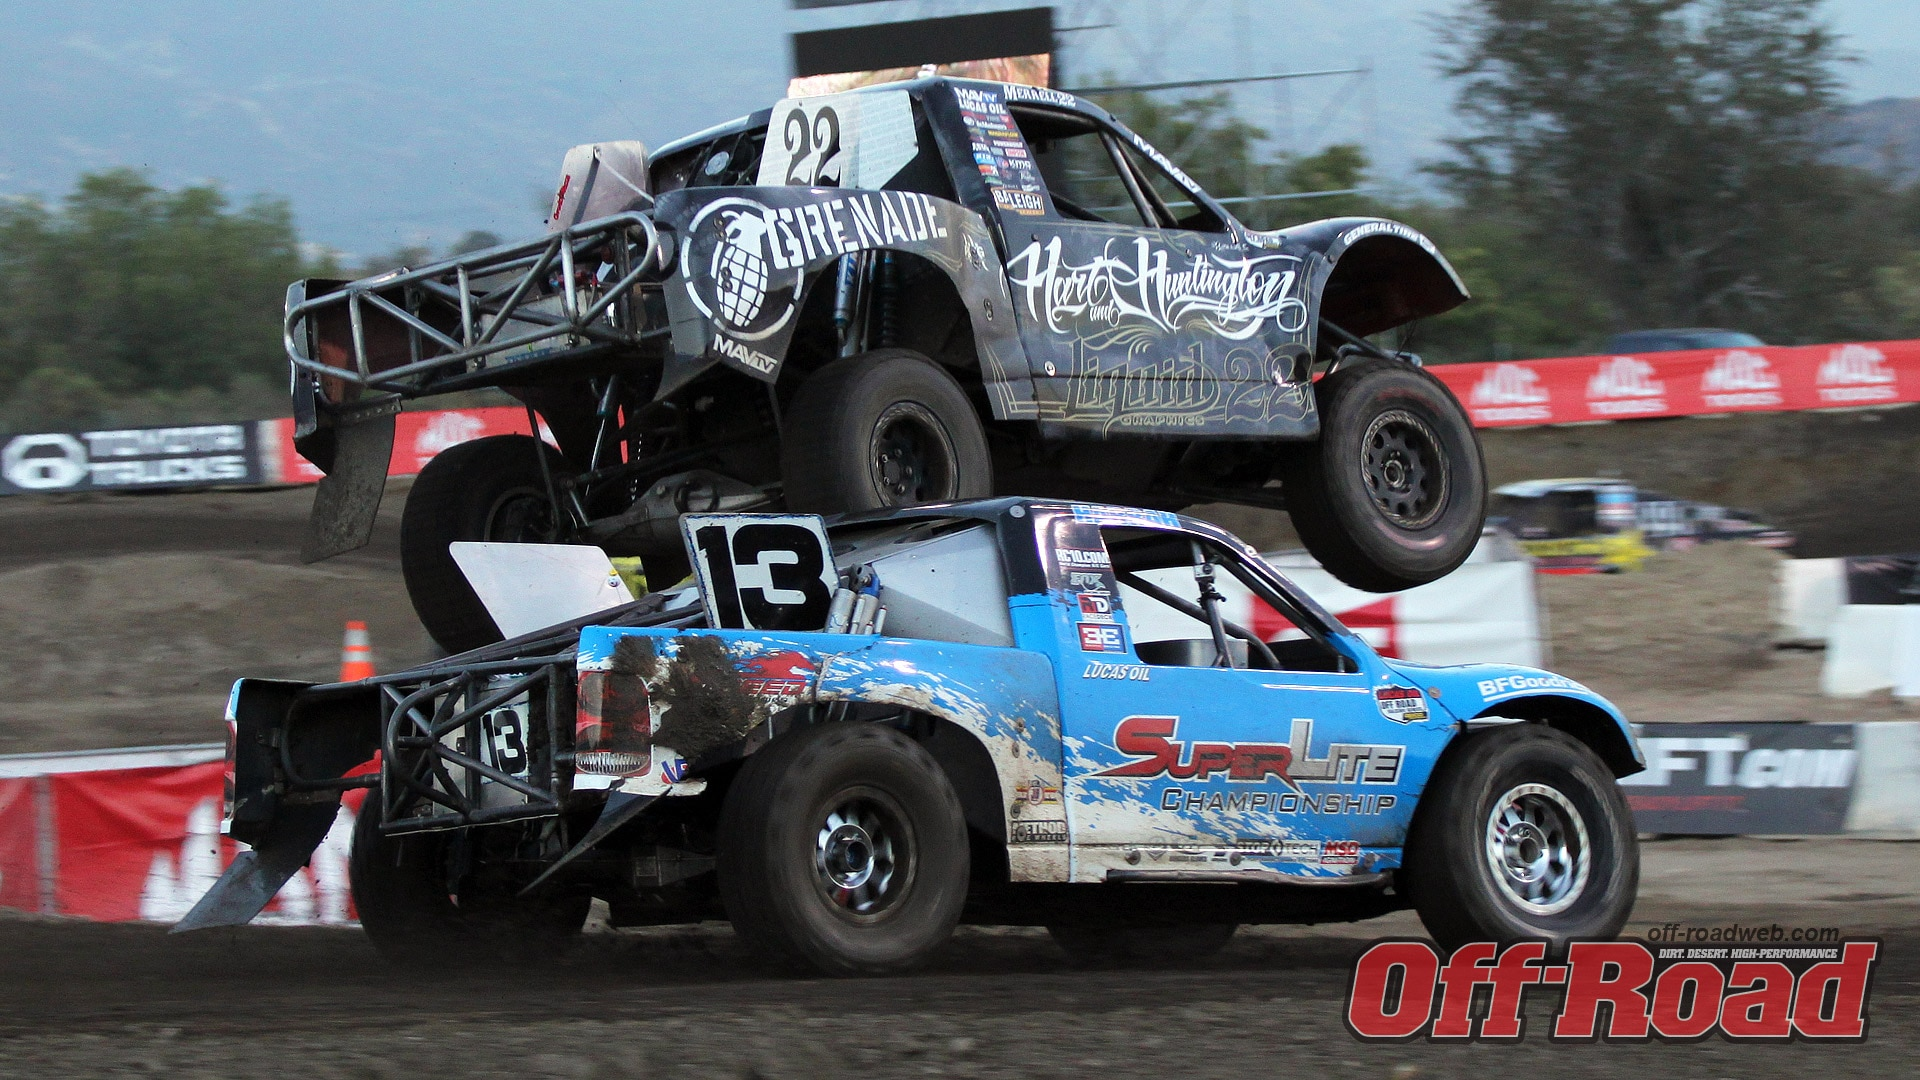 081010or 6788+lucas oil off road racing series+round 9 pro 4 unlimited